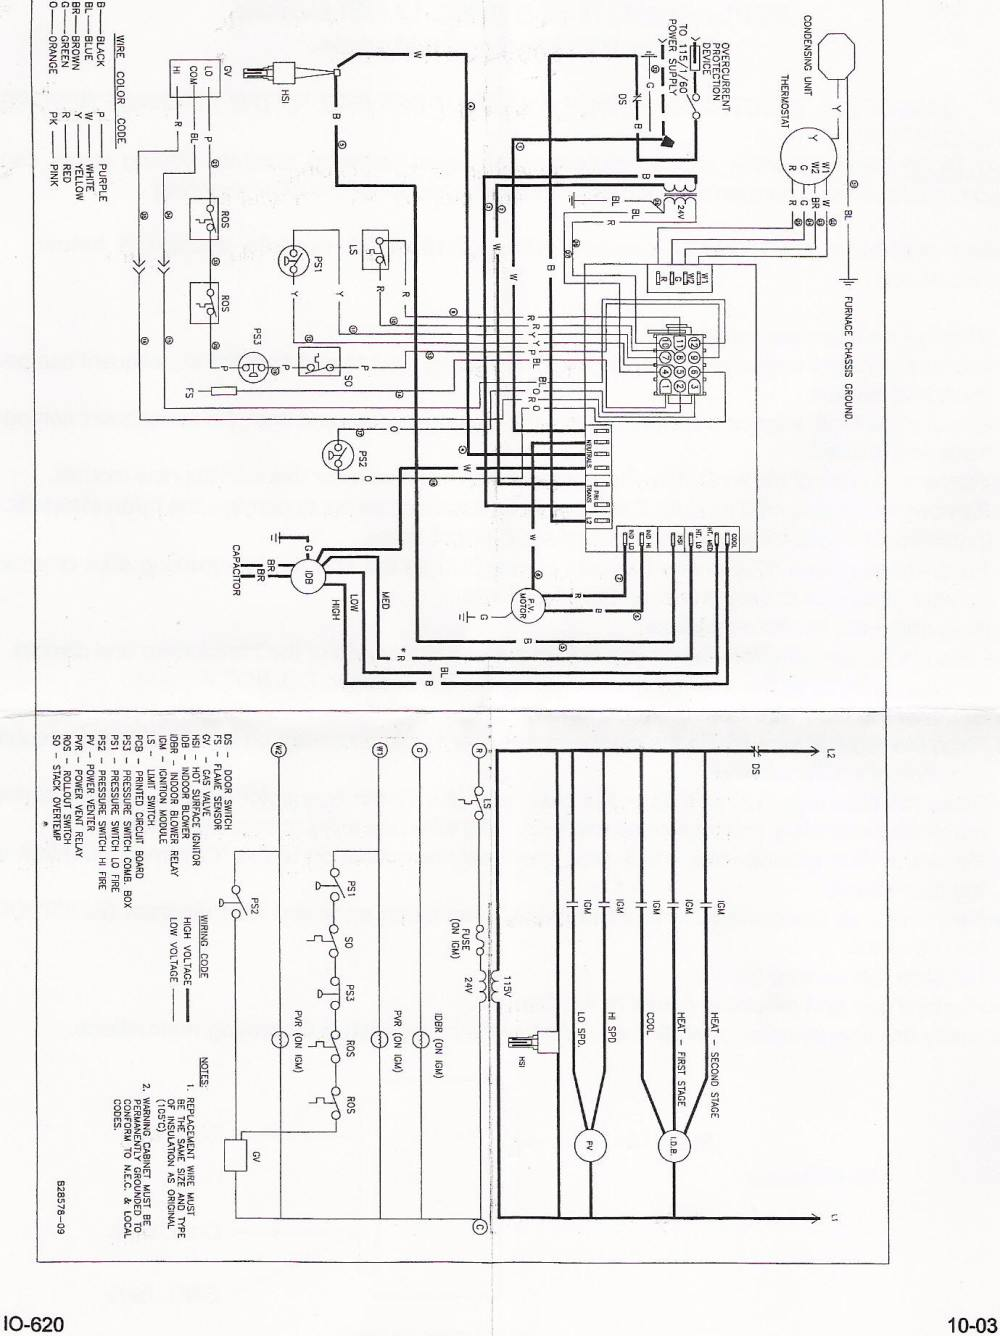 medium resolution of american standard air handler wiring diagram for wiring diagram rh 2 14 12 jacobwinterstein com nordyne electric furnace wiring diagram goodman air handler